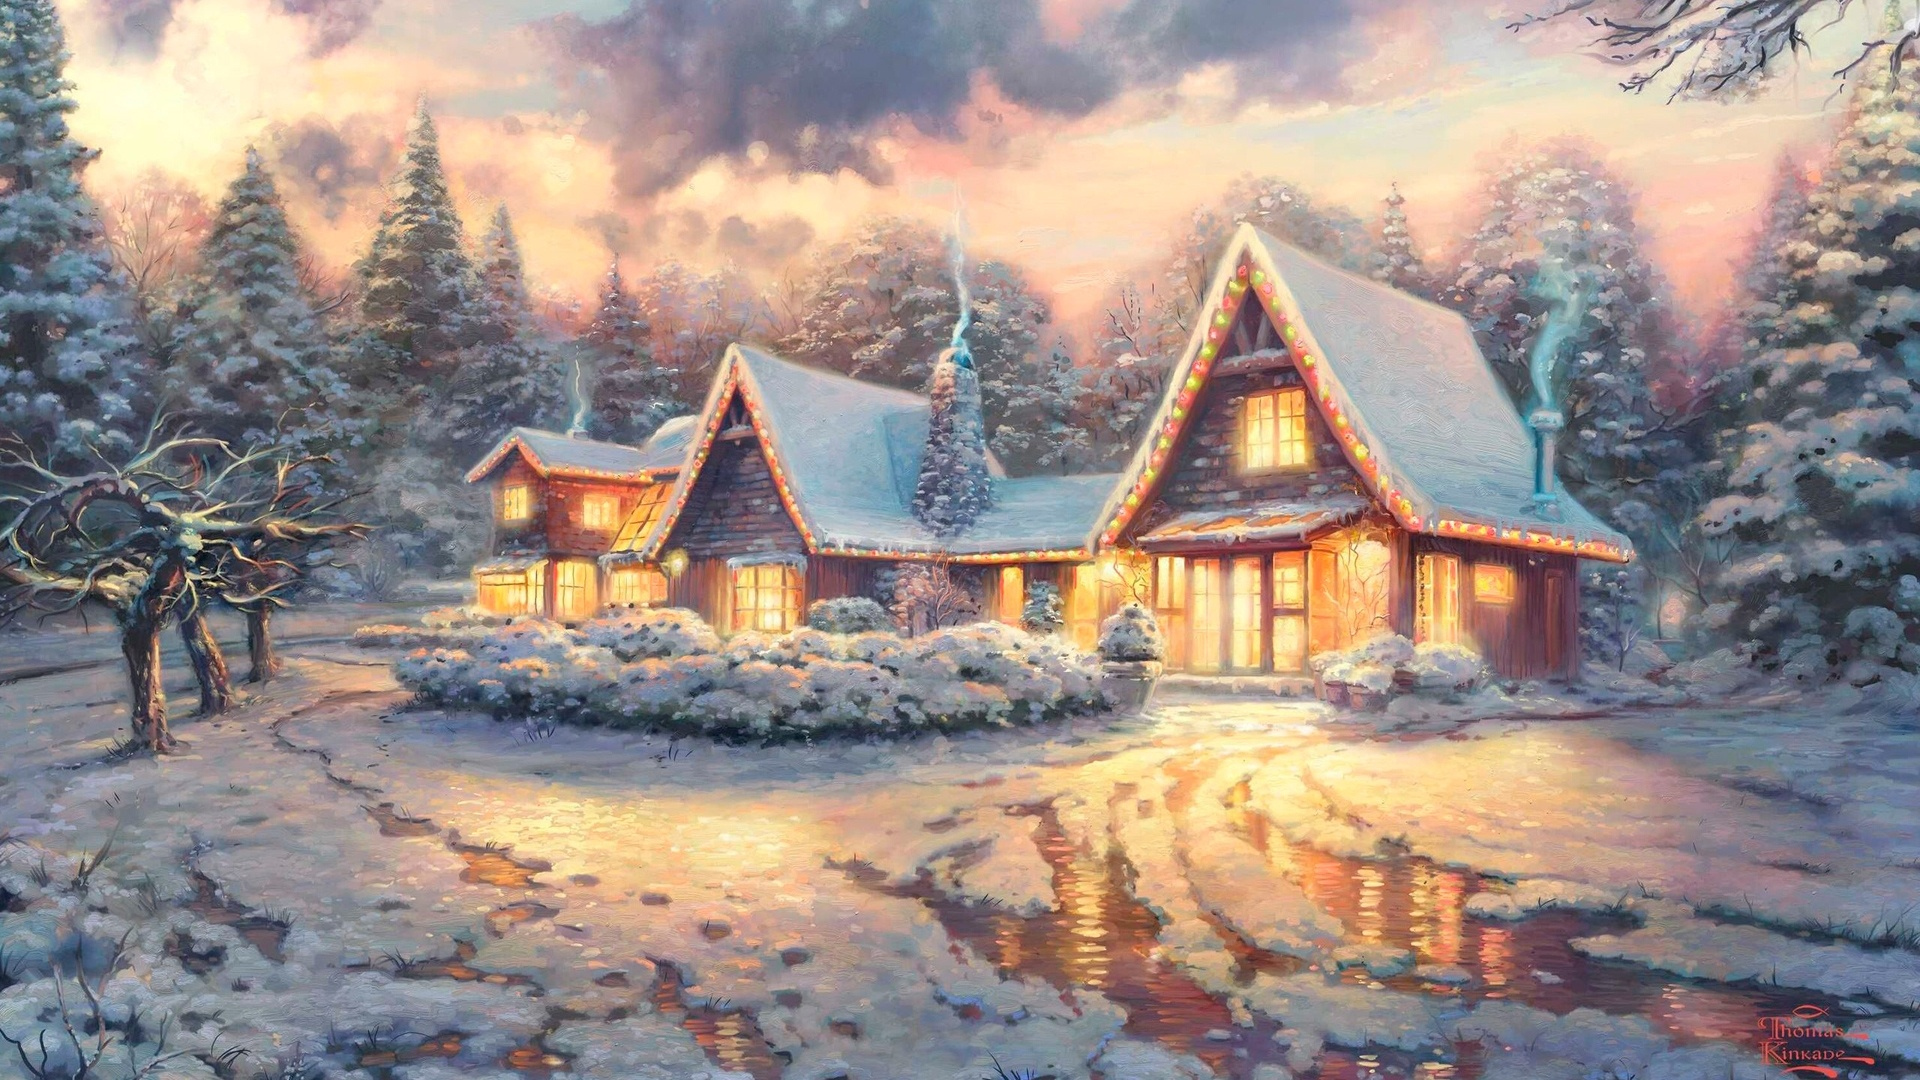 Winter New Year's Evening Picture